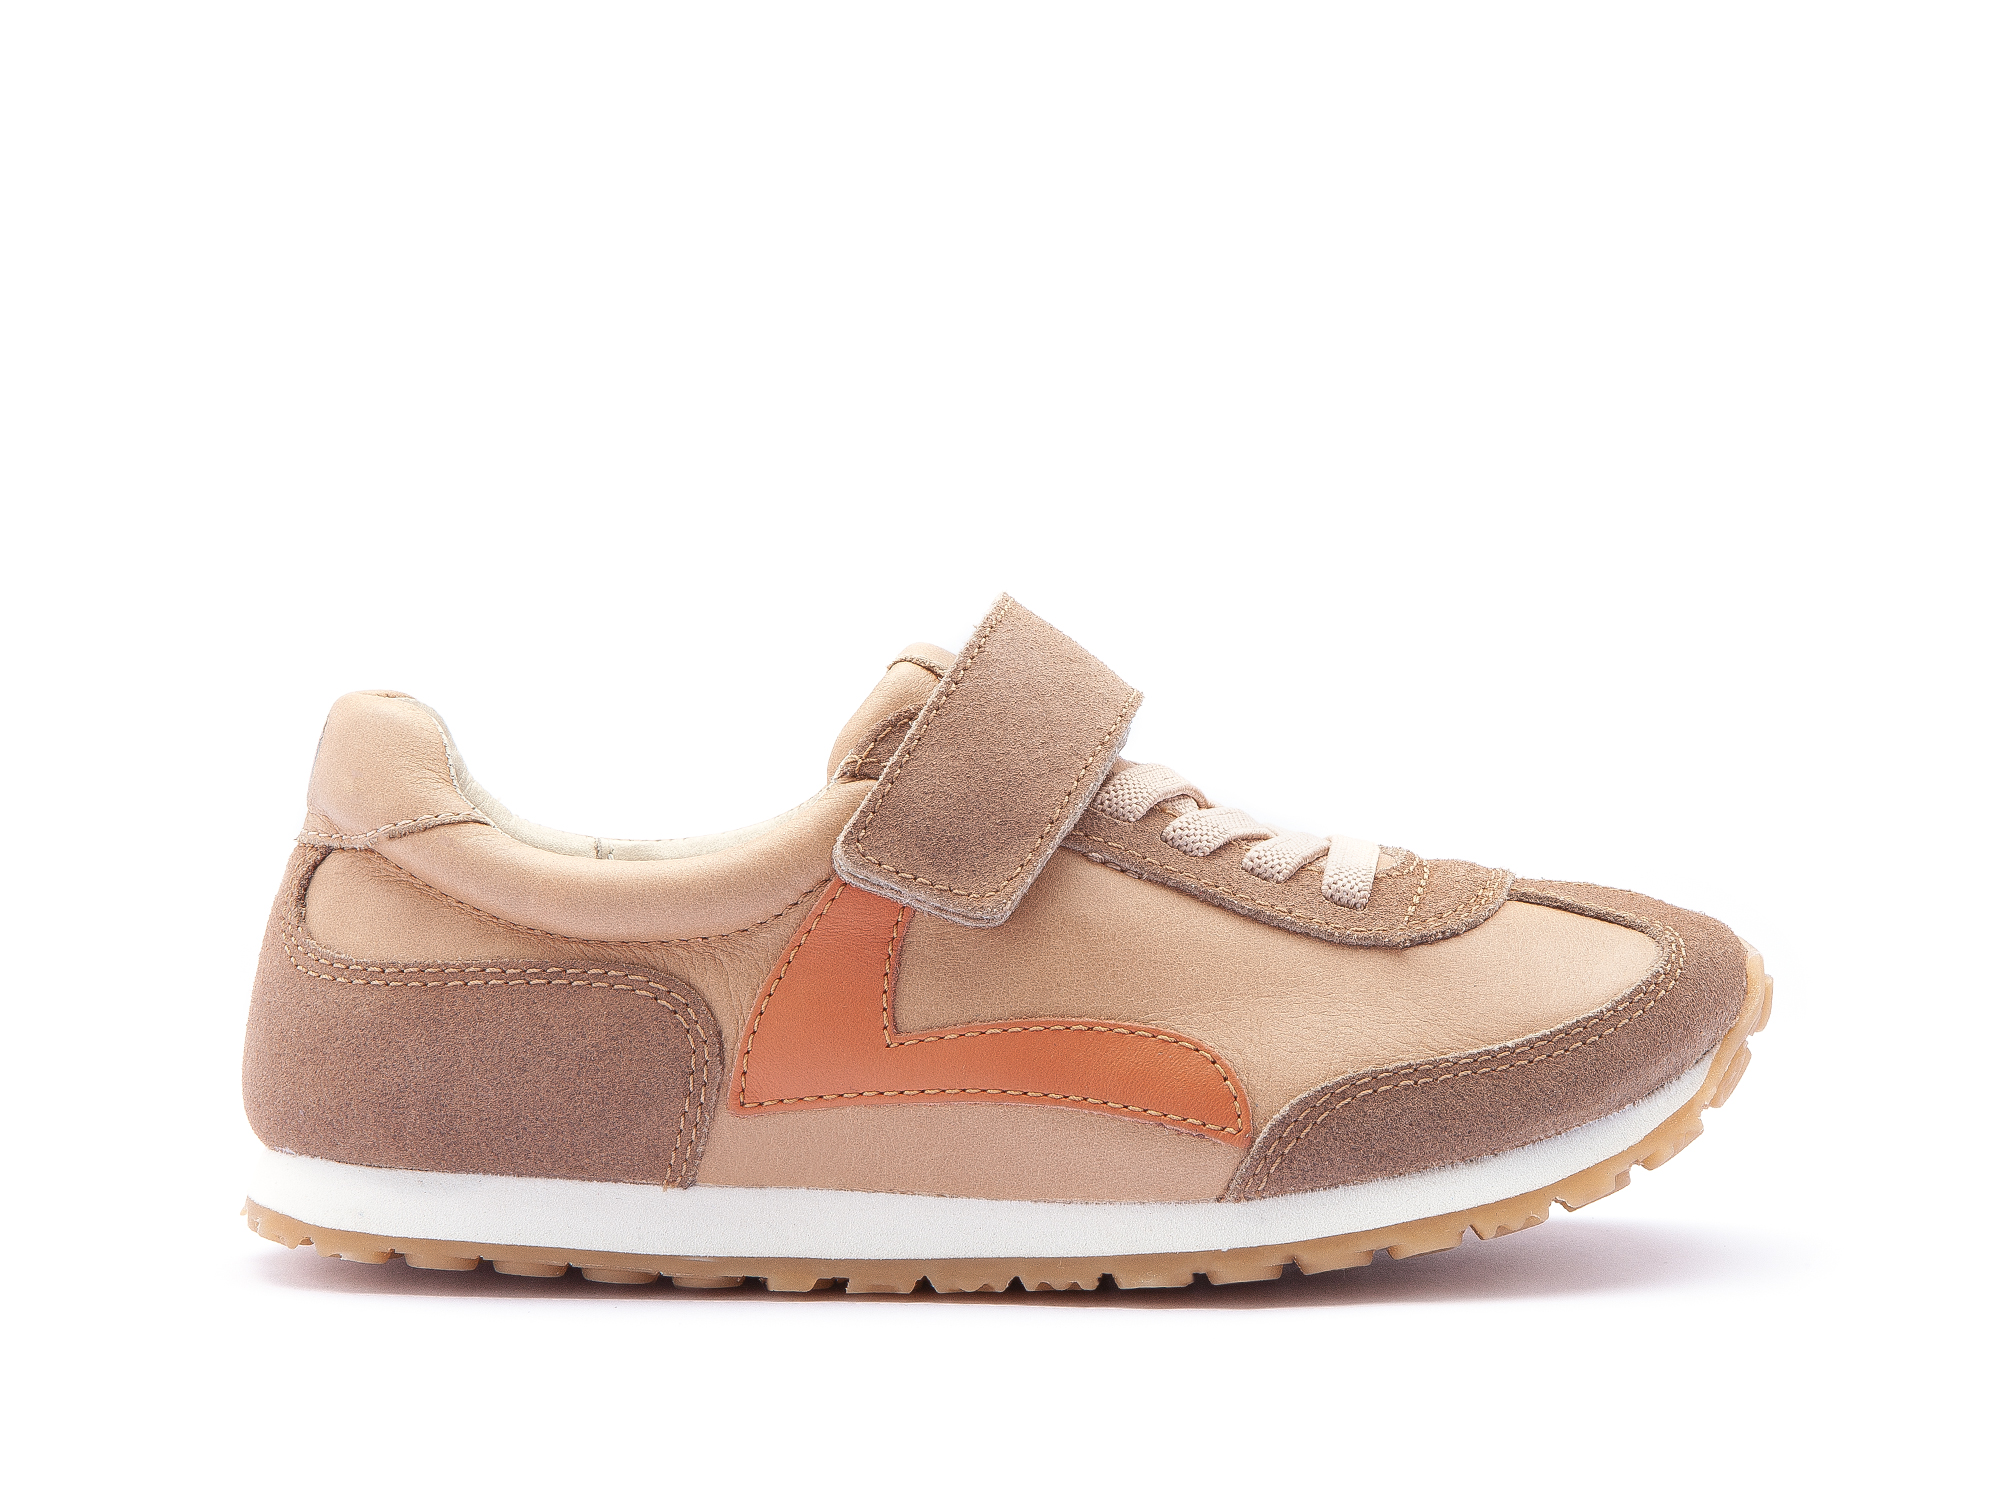 Tênis Start Sand/ Dry Tan Suede Junior 4 à 8 anos - 1